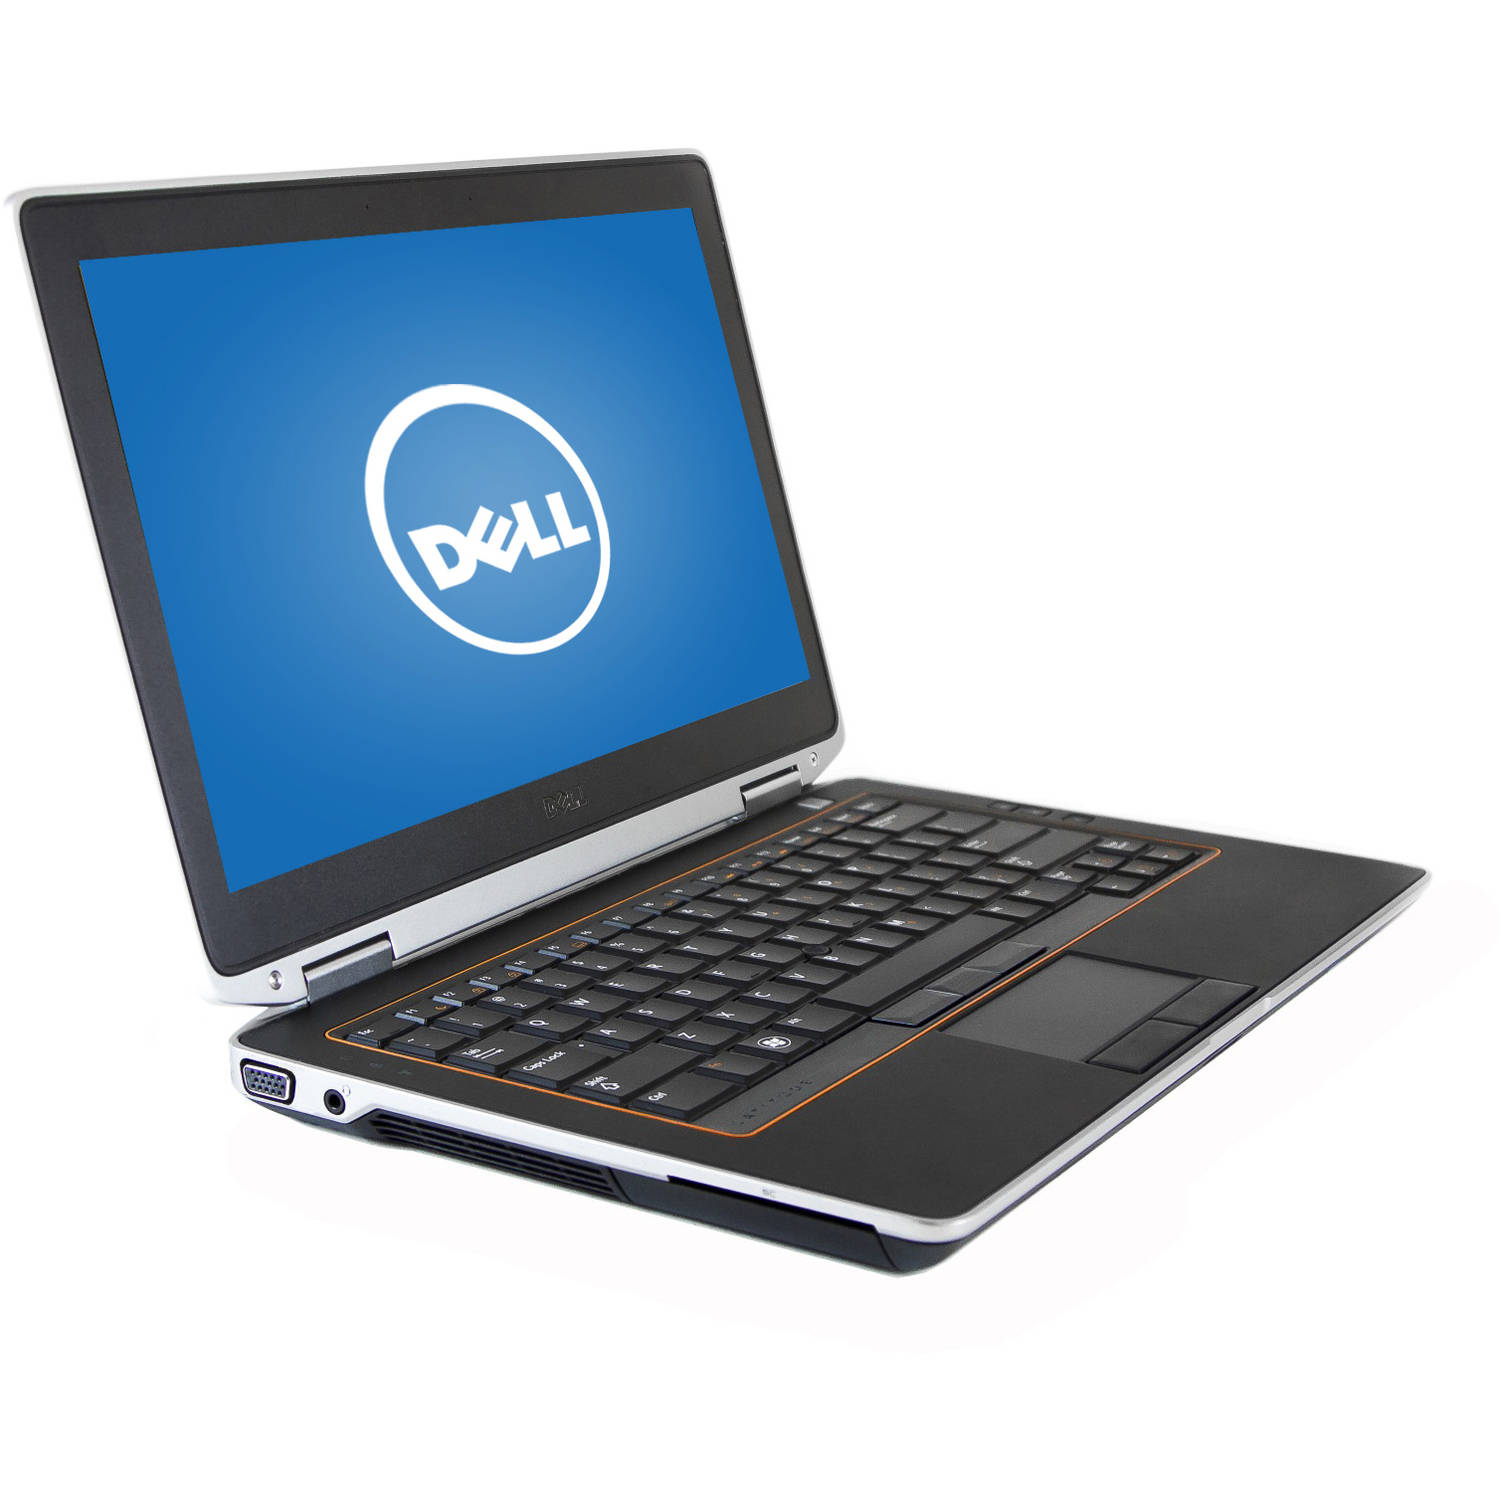 Dell Latitude E6320 13.3in i5 2.5GHz 4GB 250GB Win7Pro64